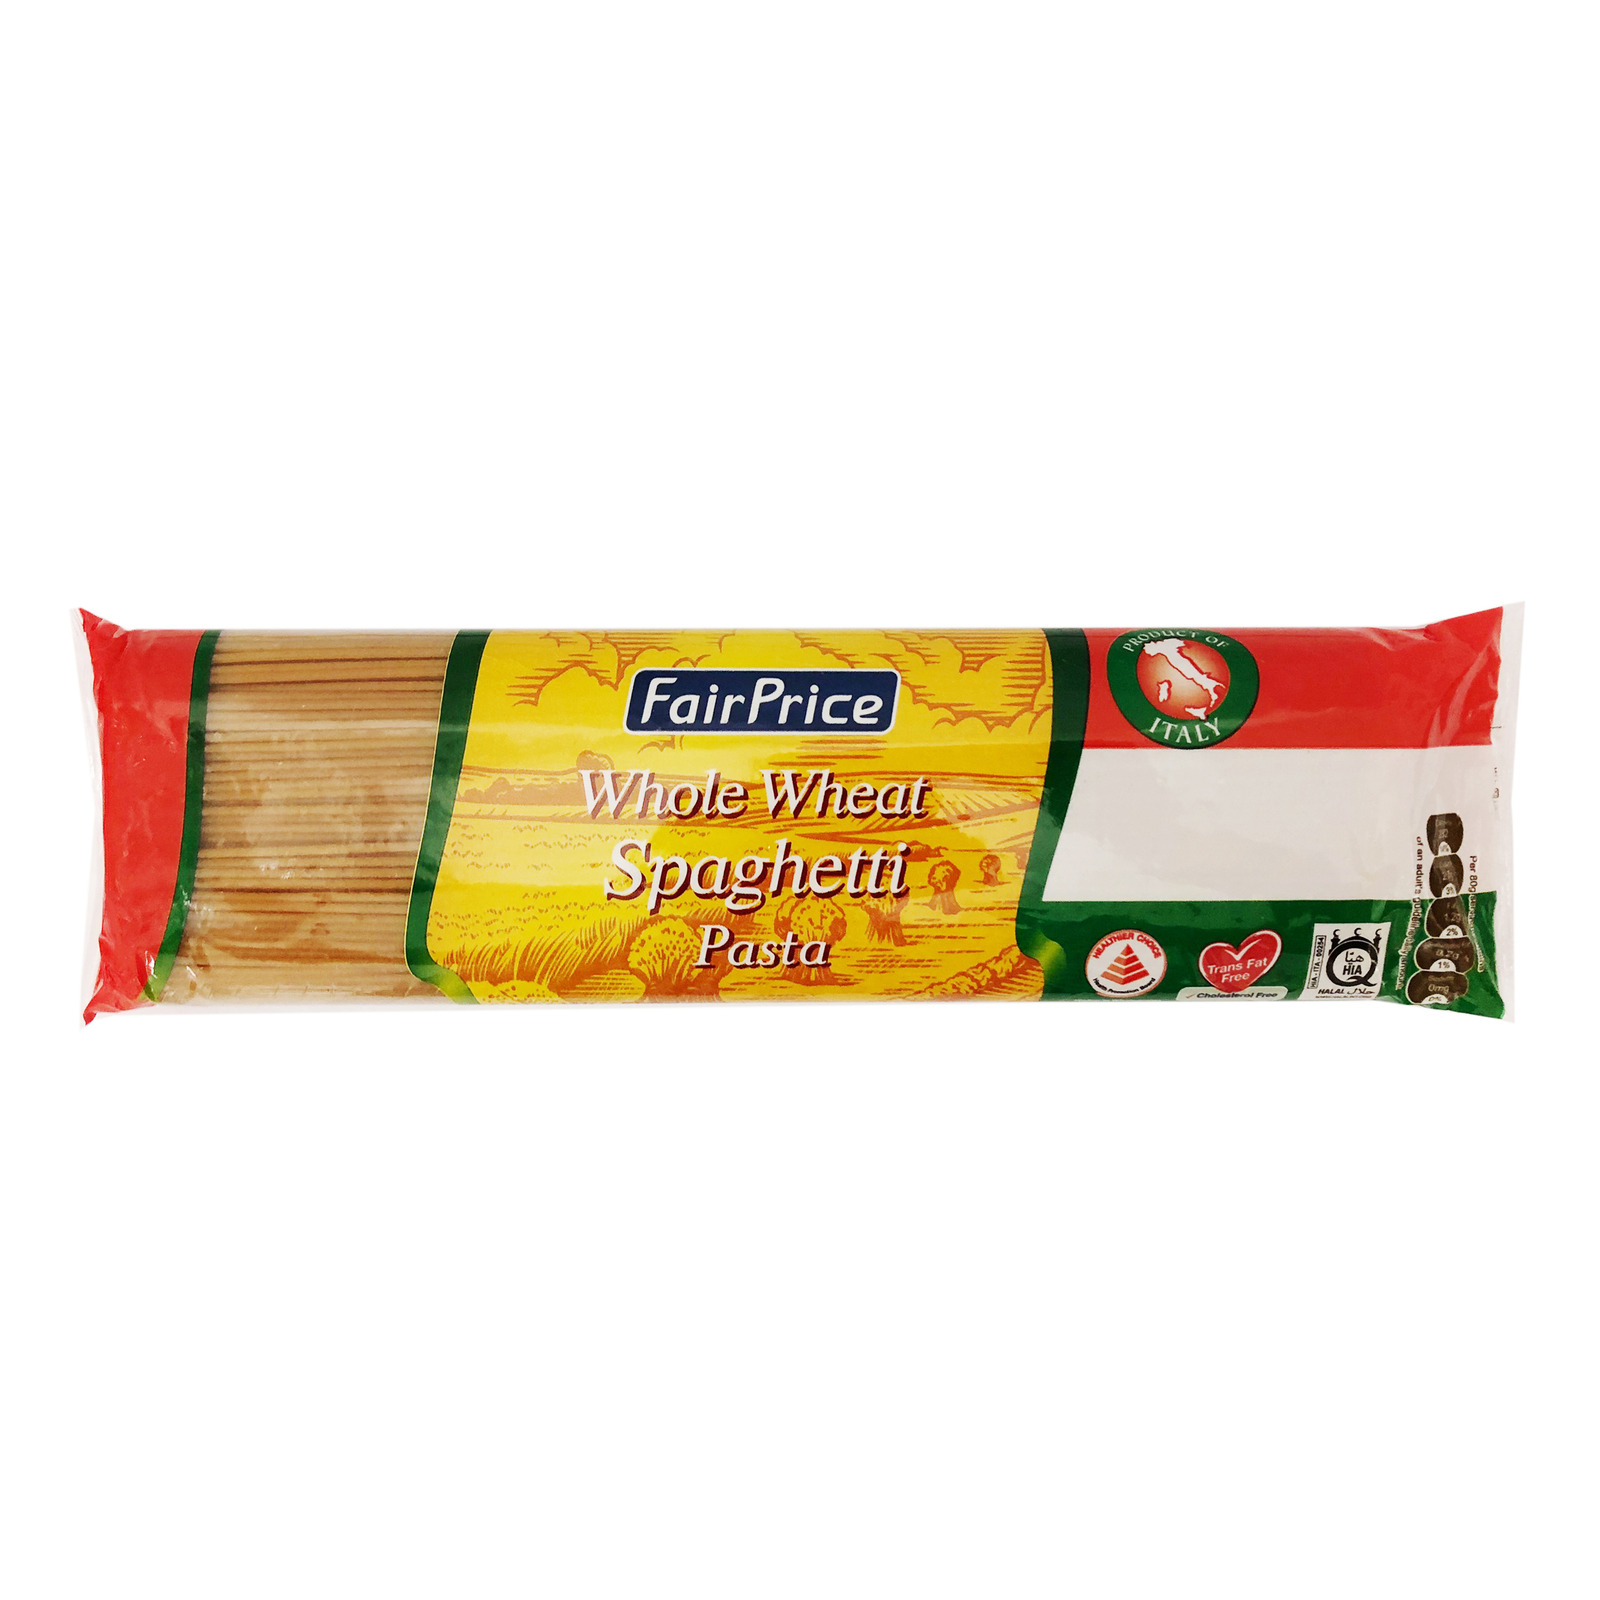 FairPrice Whole Wheat Pasta - Spaghetti